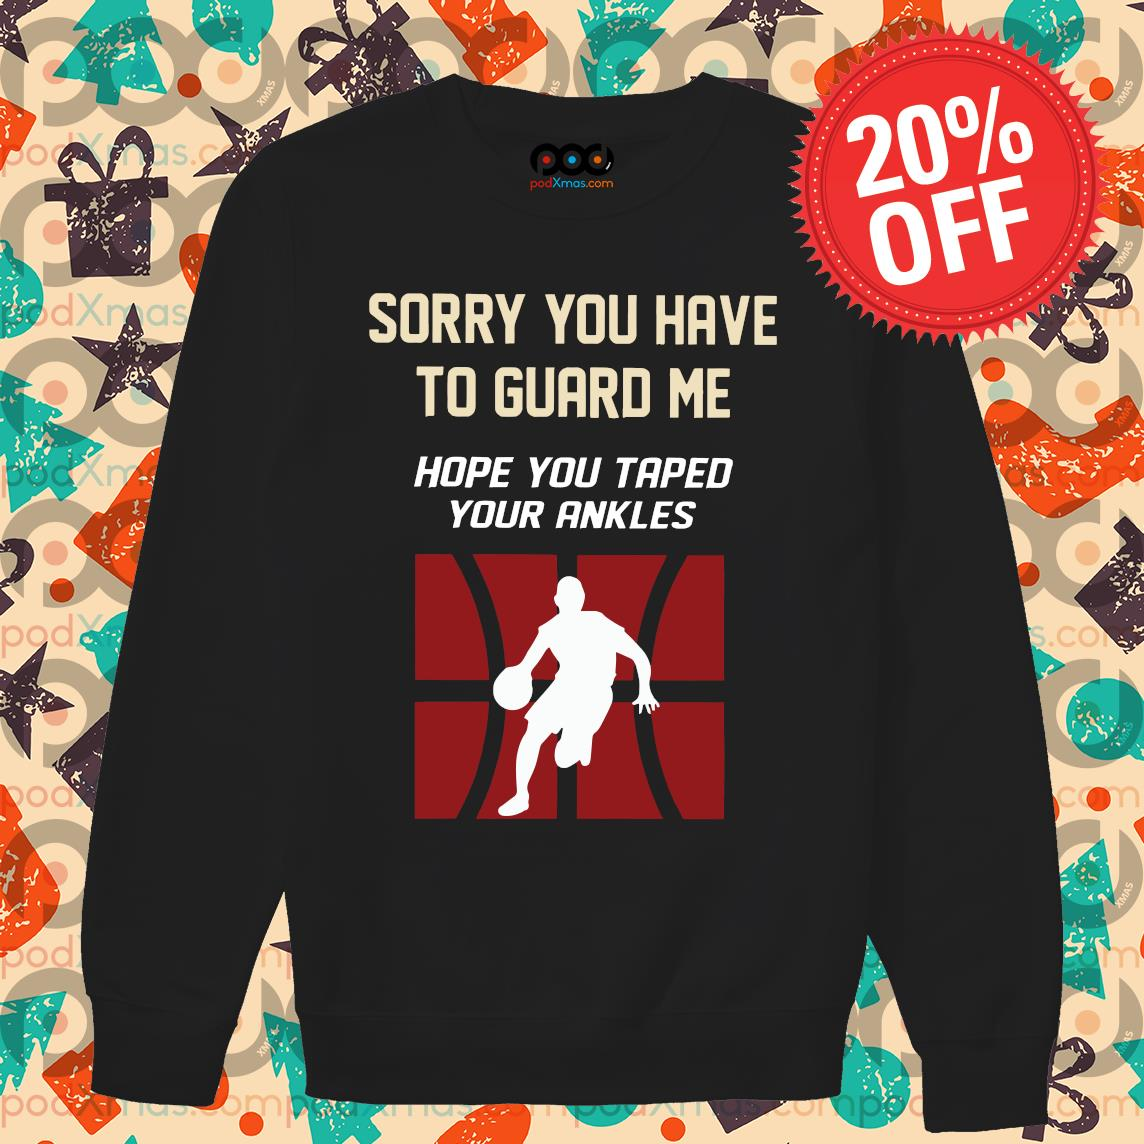 Sorry You Have To Guard Me Hope You Taped Your Ankles Basketball s Sweater PODxmas den